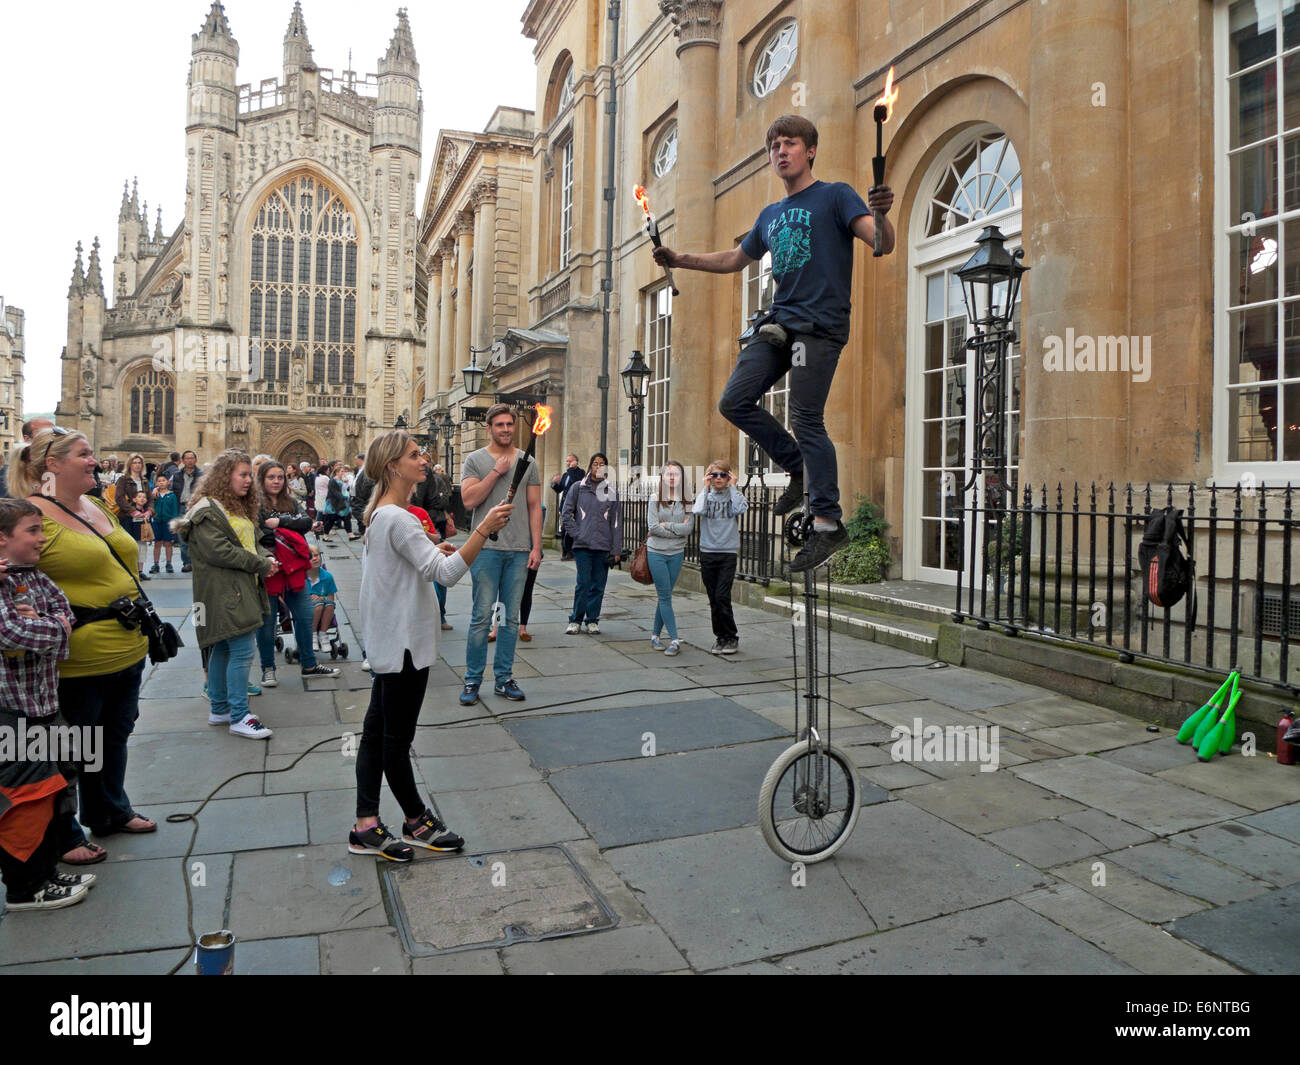 Street performer juggling with fire on a unicycle watched by tourists outside Bath Abbey Bath, England  KATHY DEWITT - Stock Image